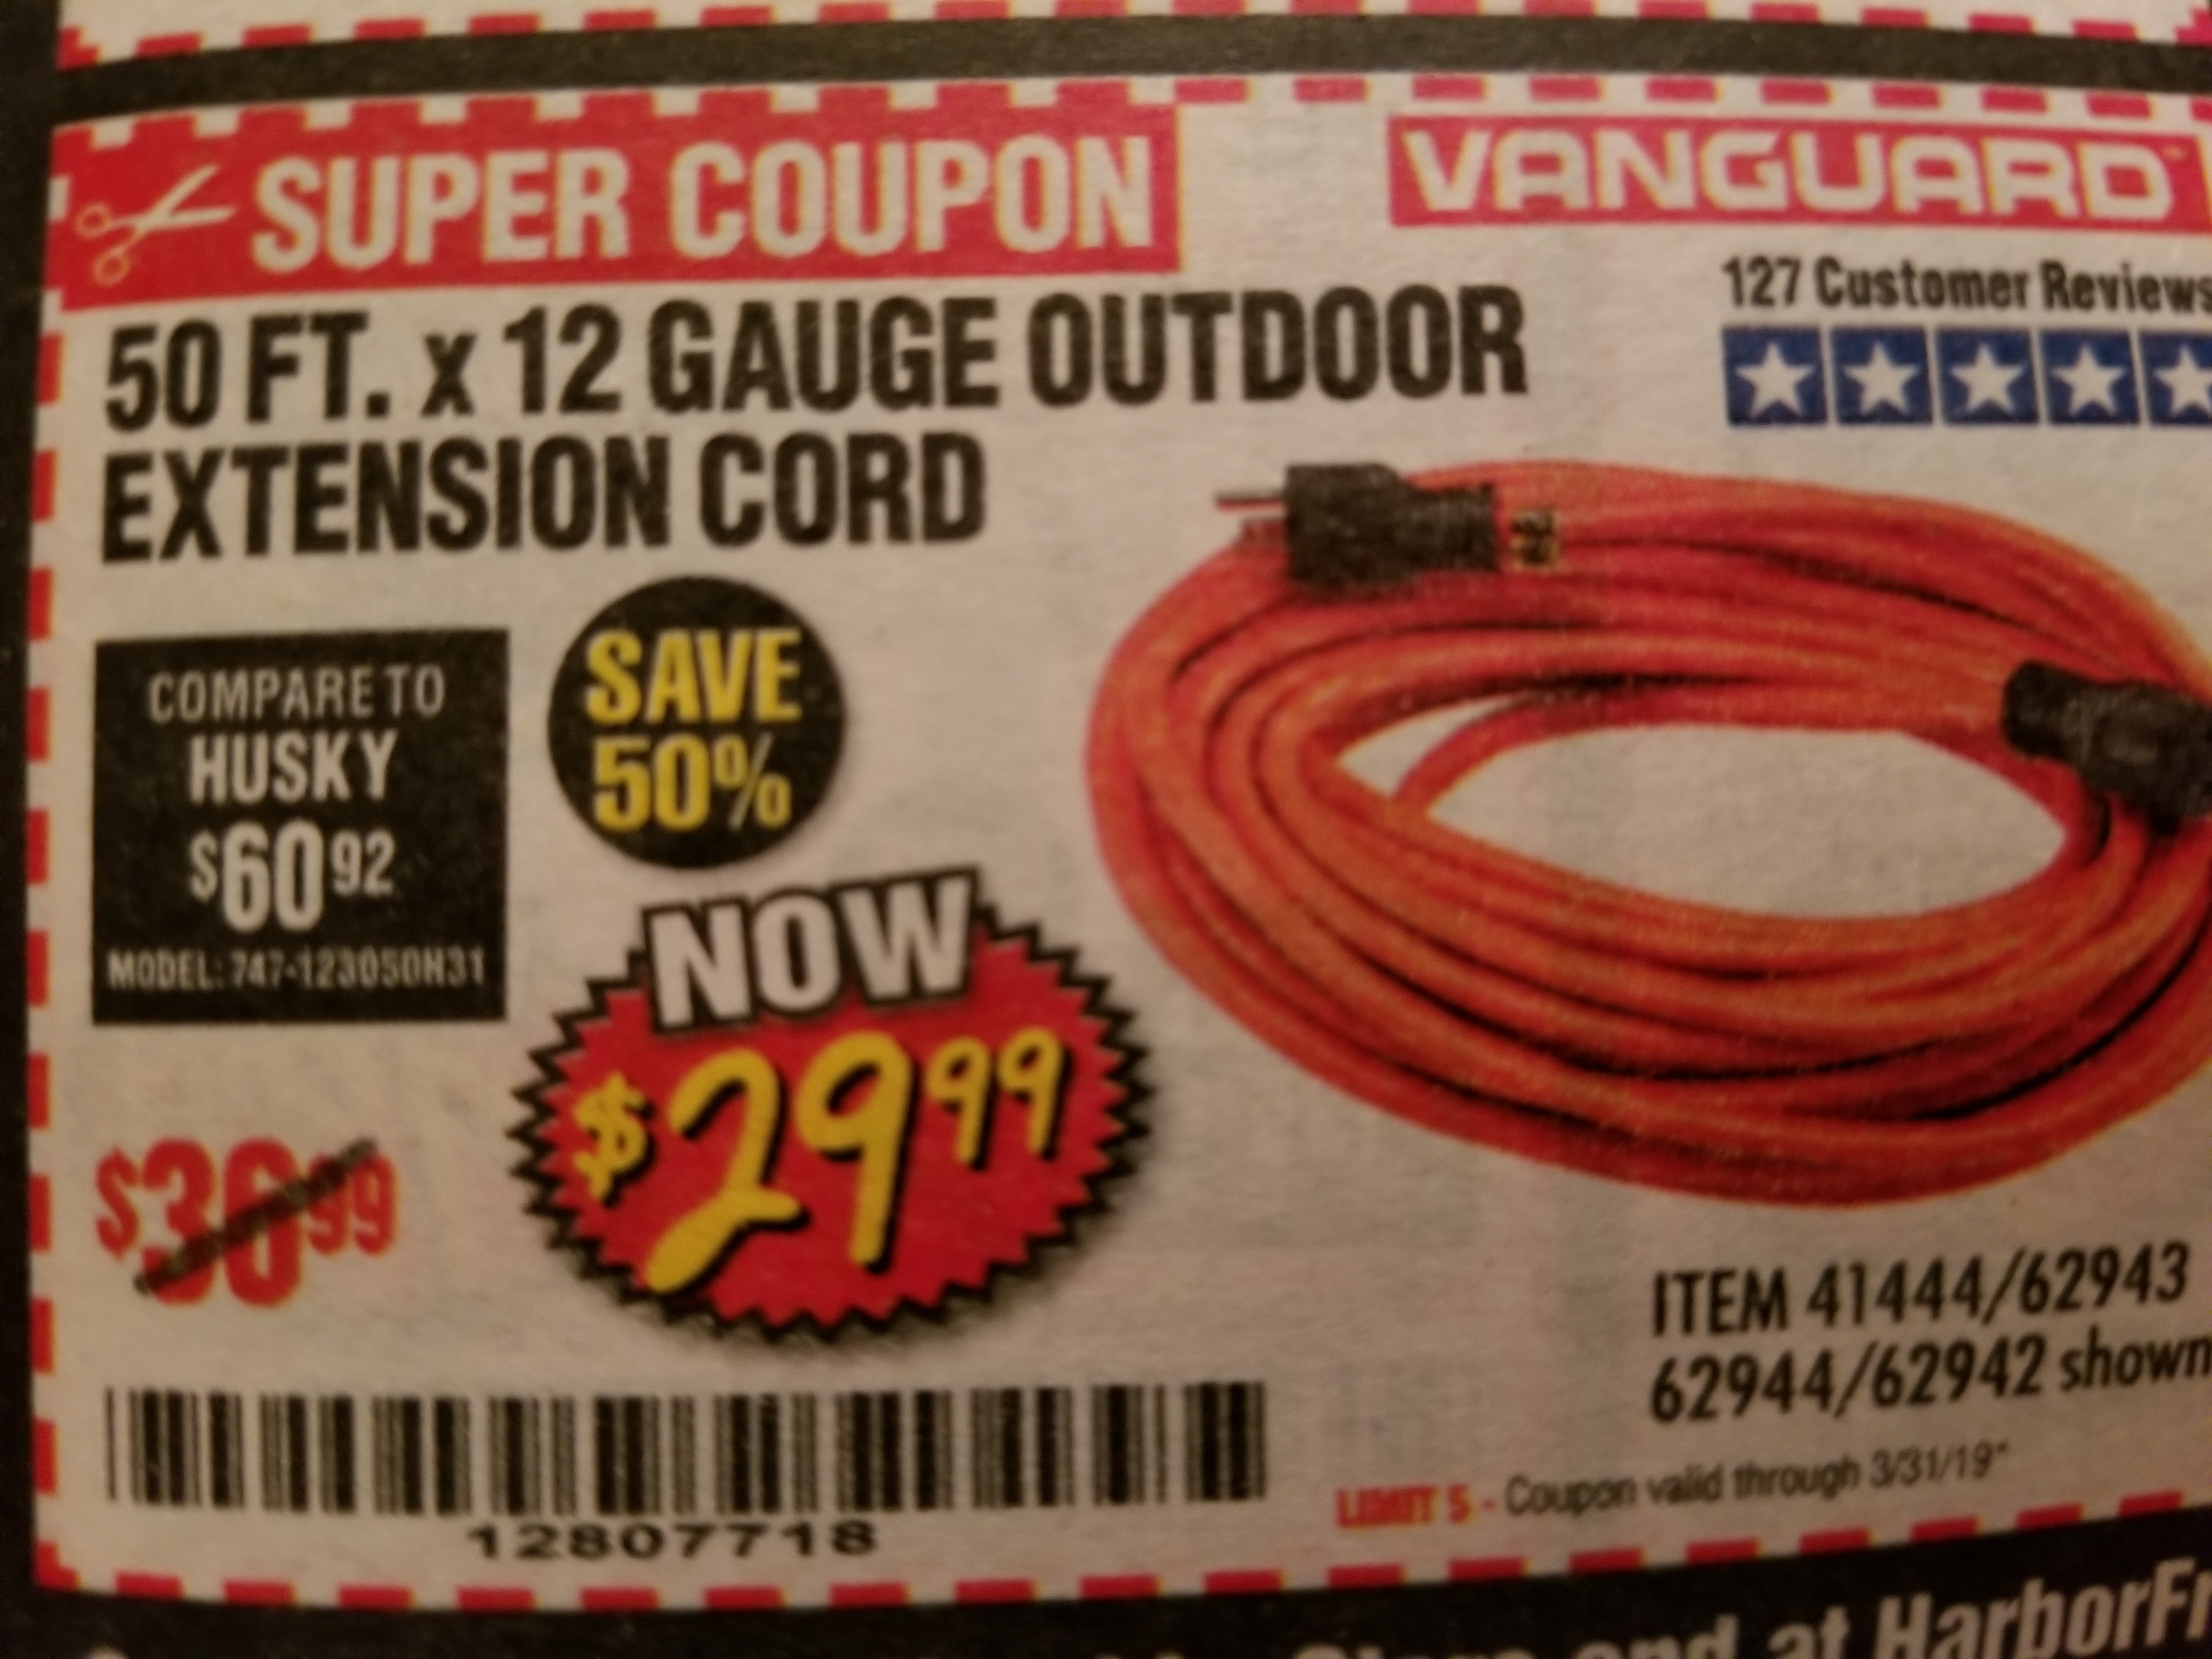 www.hfqpdb.com - 12 GAUGE X 50 FT. OUTDOOR EXTENSION CORD Lot No. 60273/61866/62942/62943/62944/41444